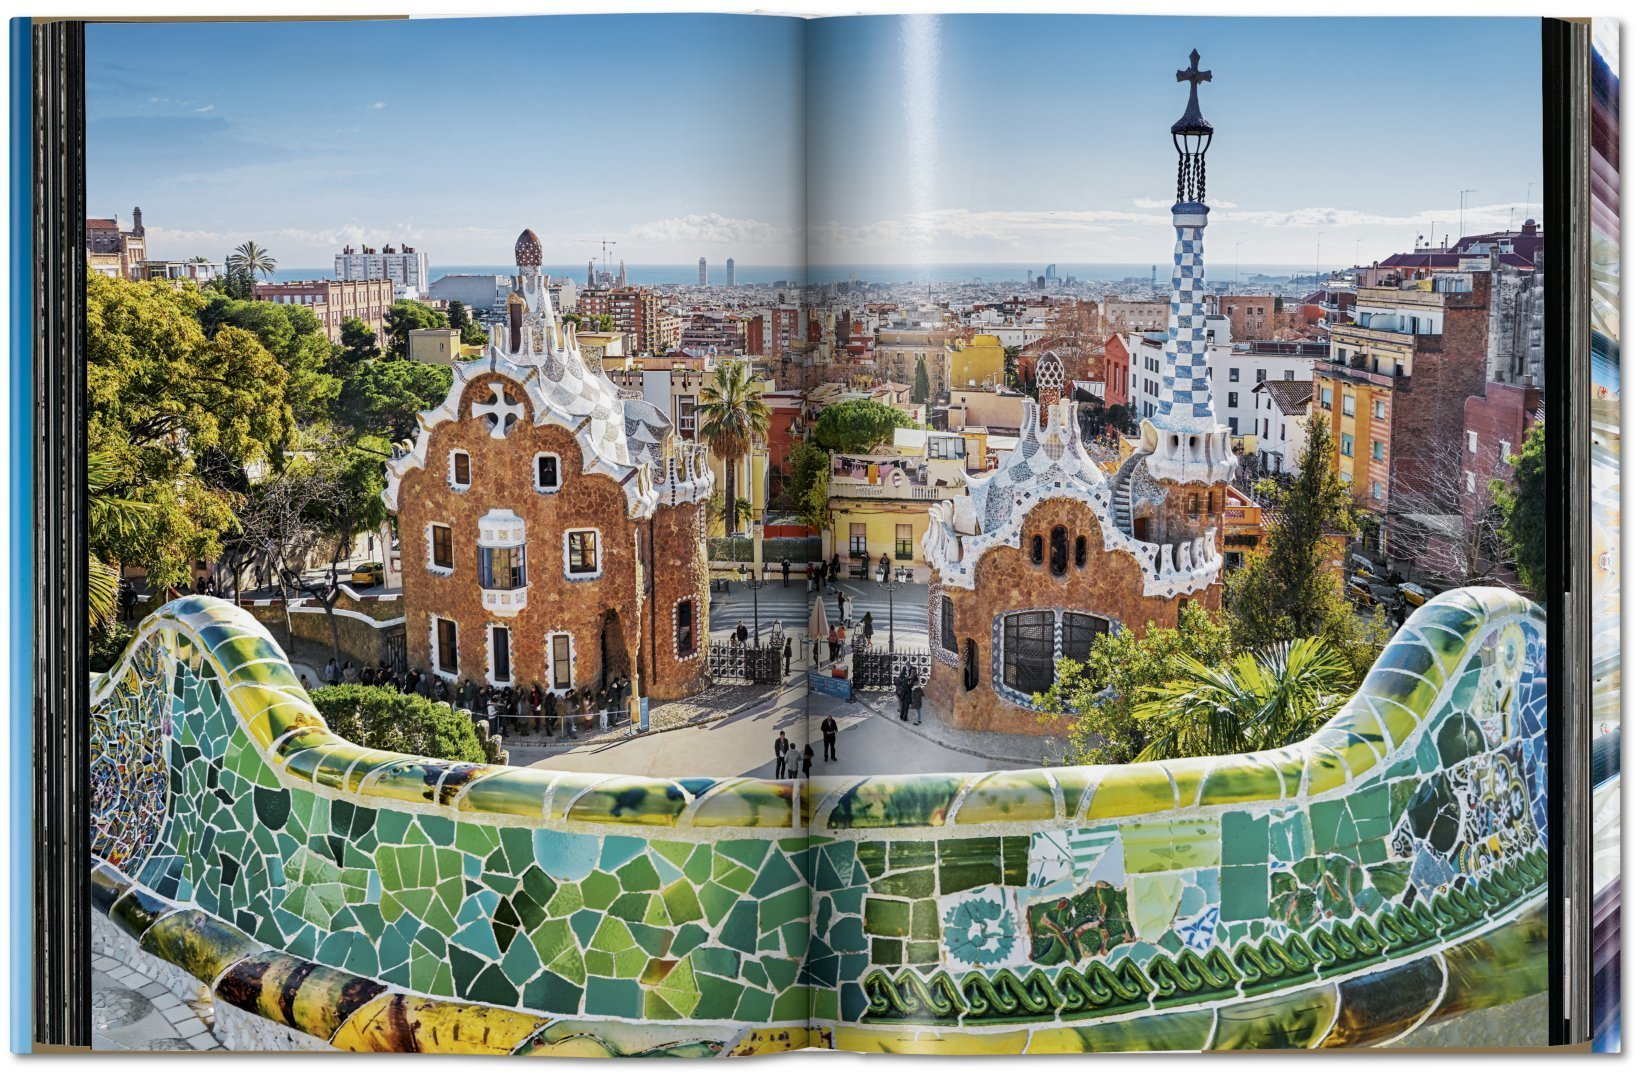 By Rainer Zerbst from Gaudi. The Complete Works copyright Taschen 2019